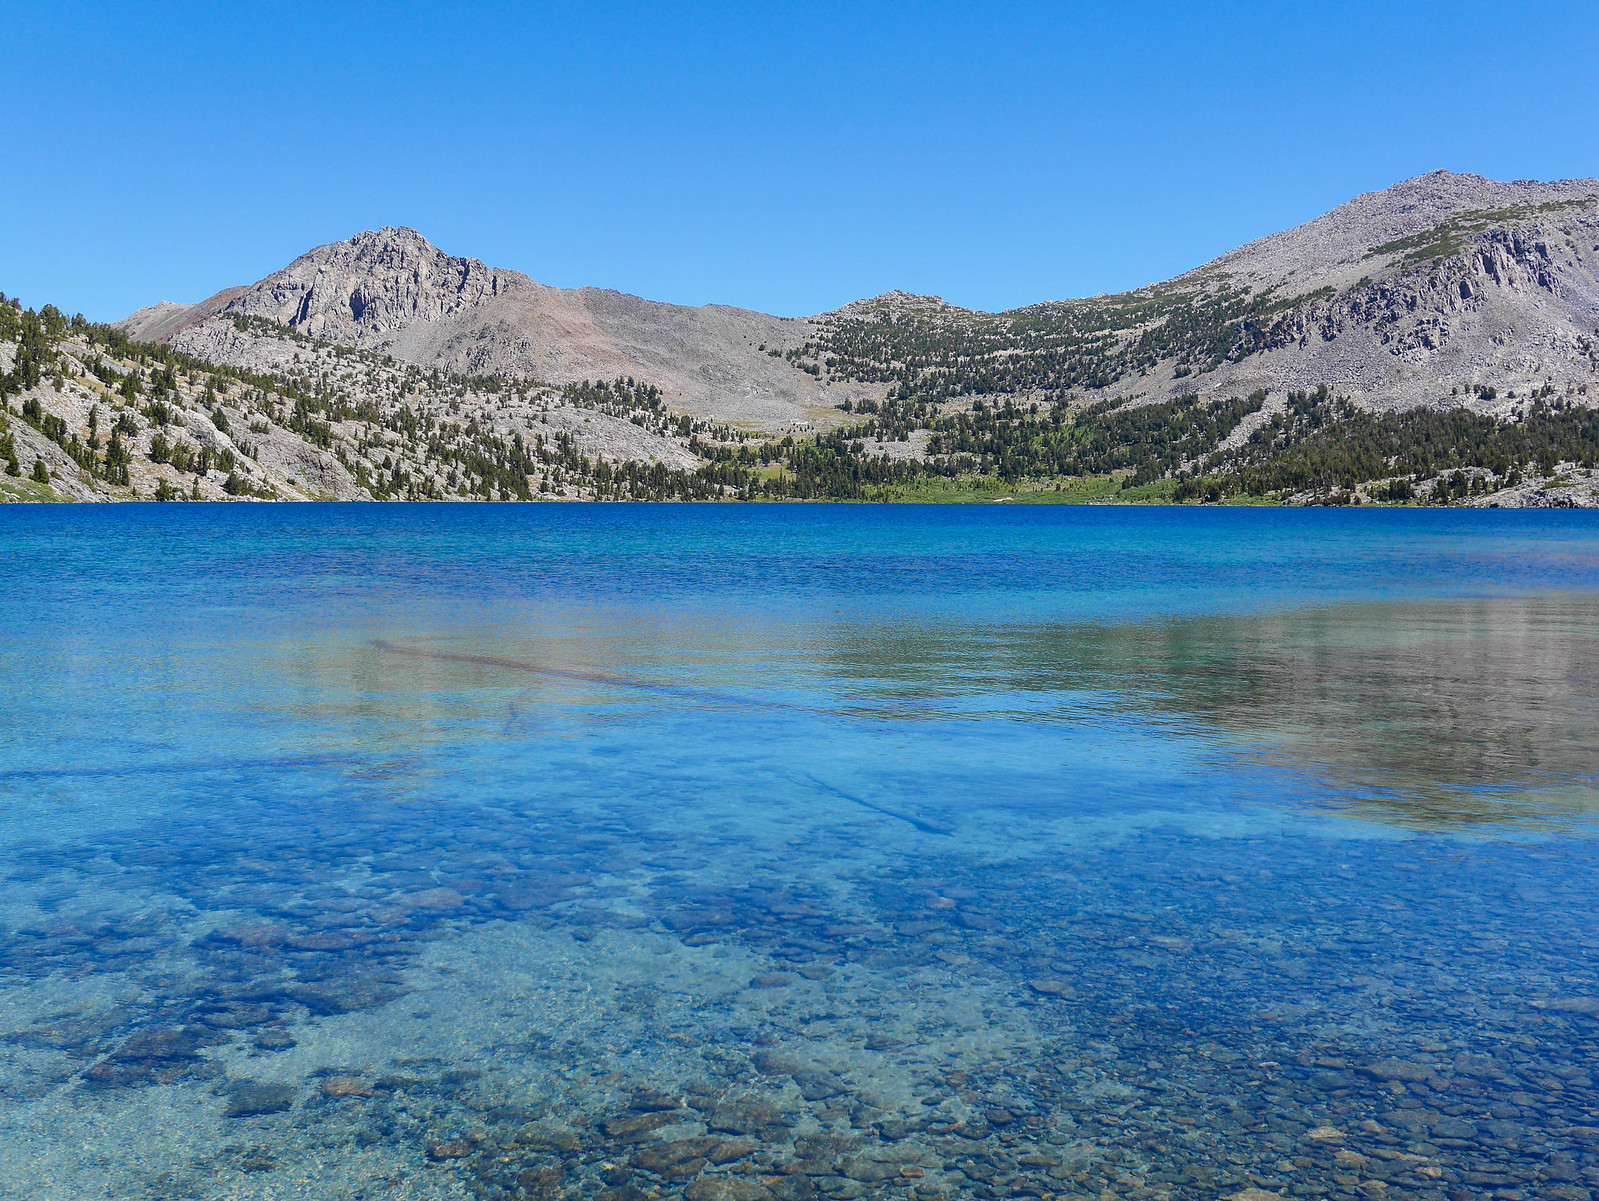 Duck Lake is famous for its especially clear/blue water